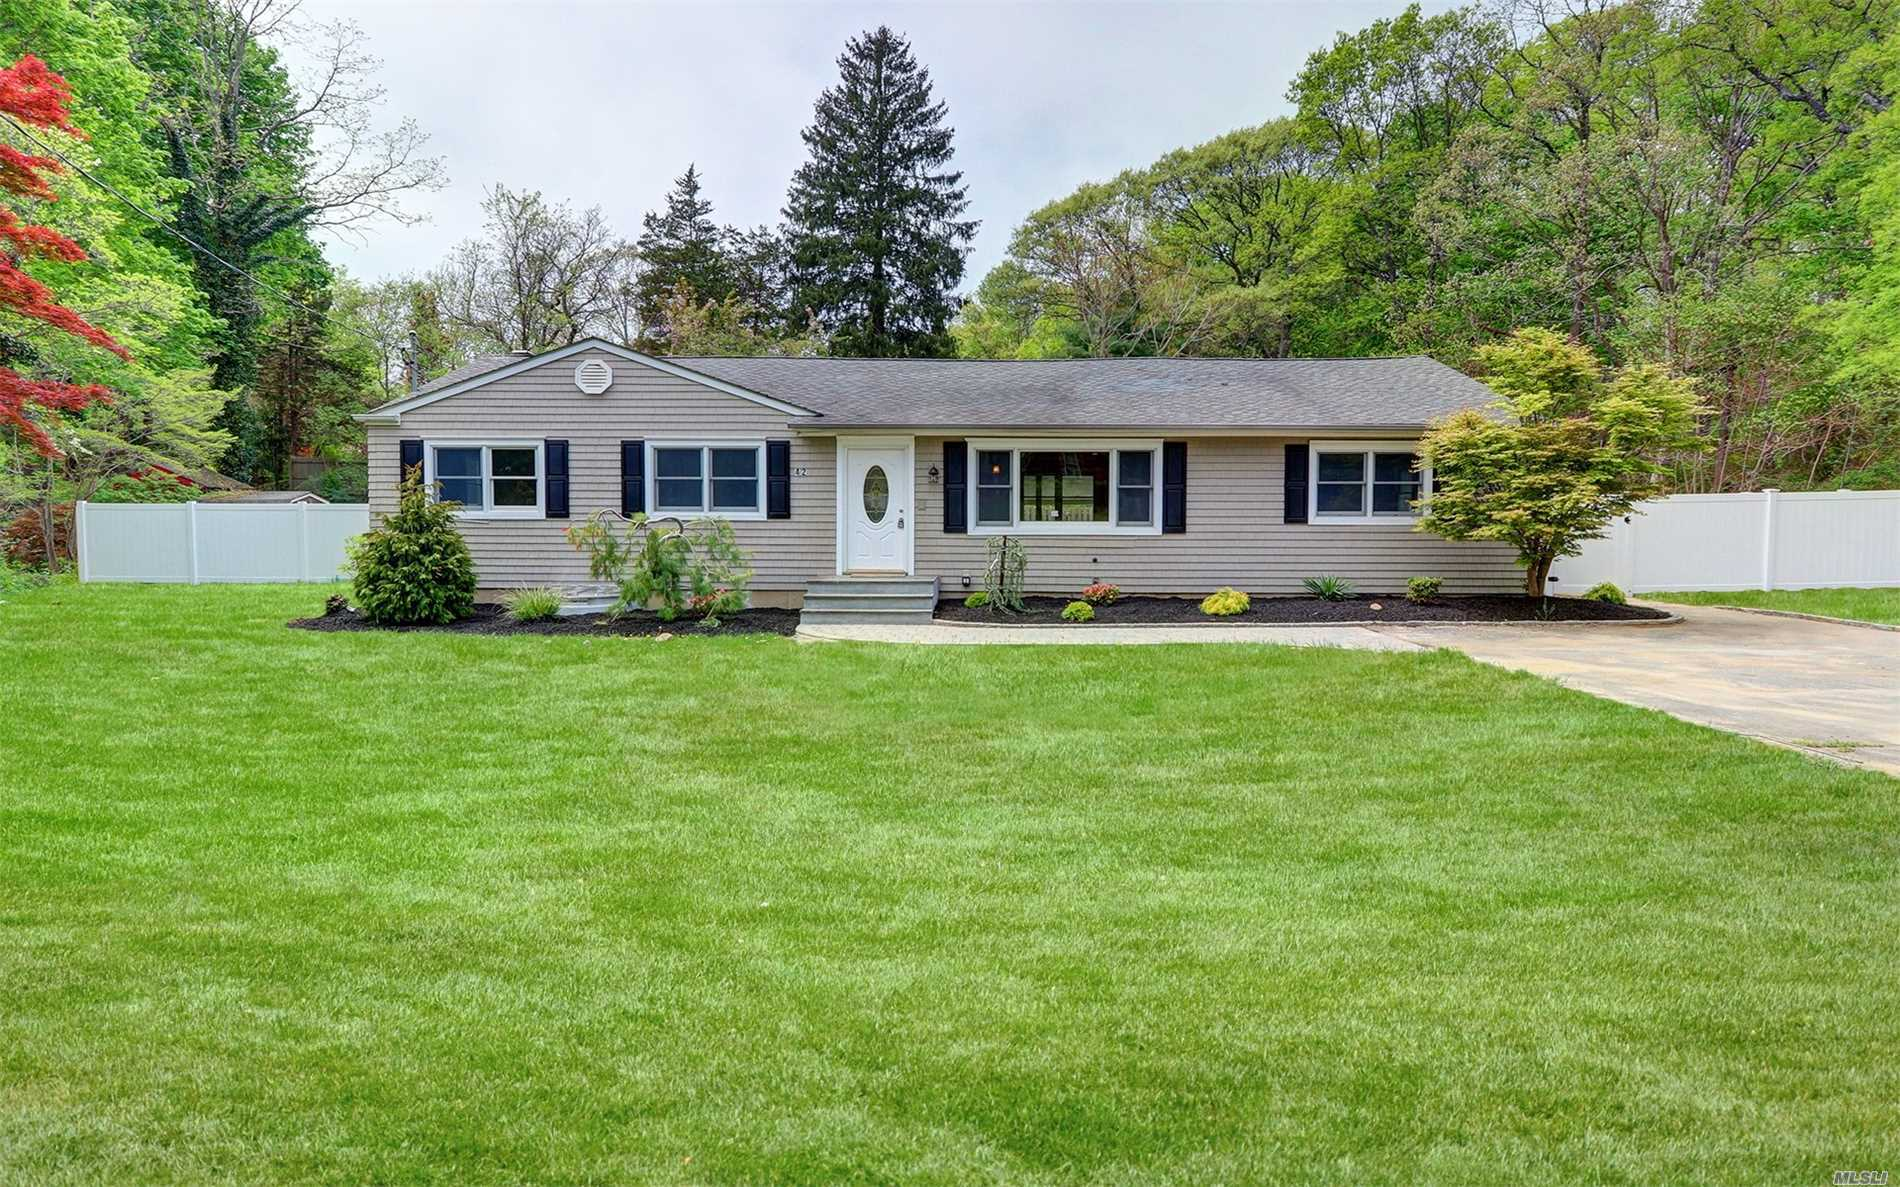 428 Pond Path, East Setauket, NY, 11733 - Home for Sale - MLS# 3029327 |  RealtyTrac